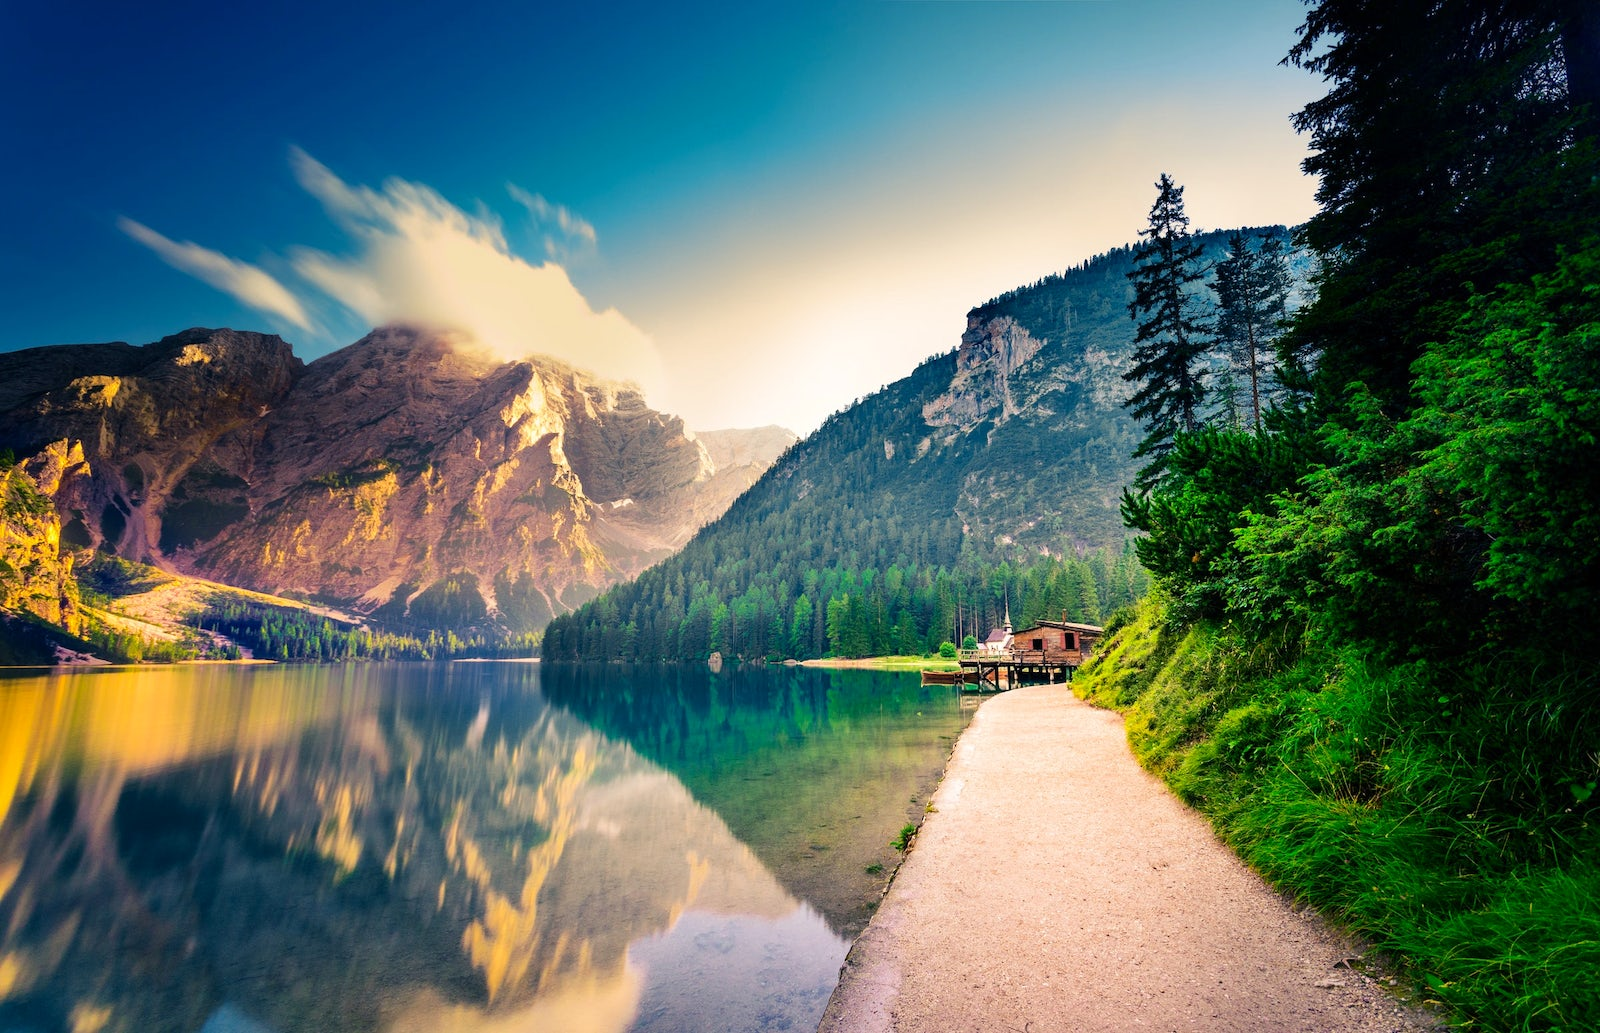 Lake Braises, the pearl of the dolomites